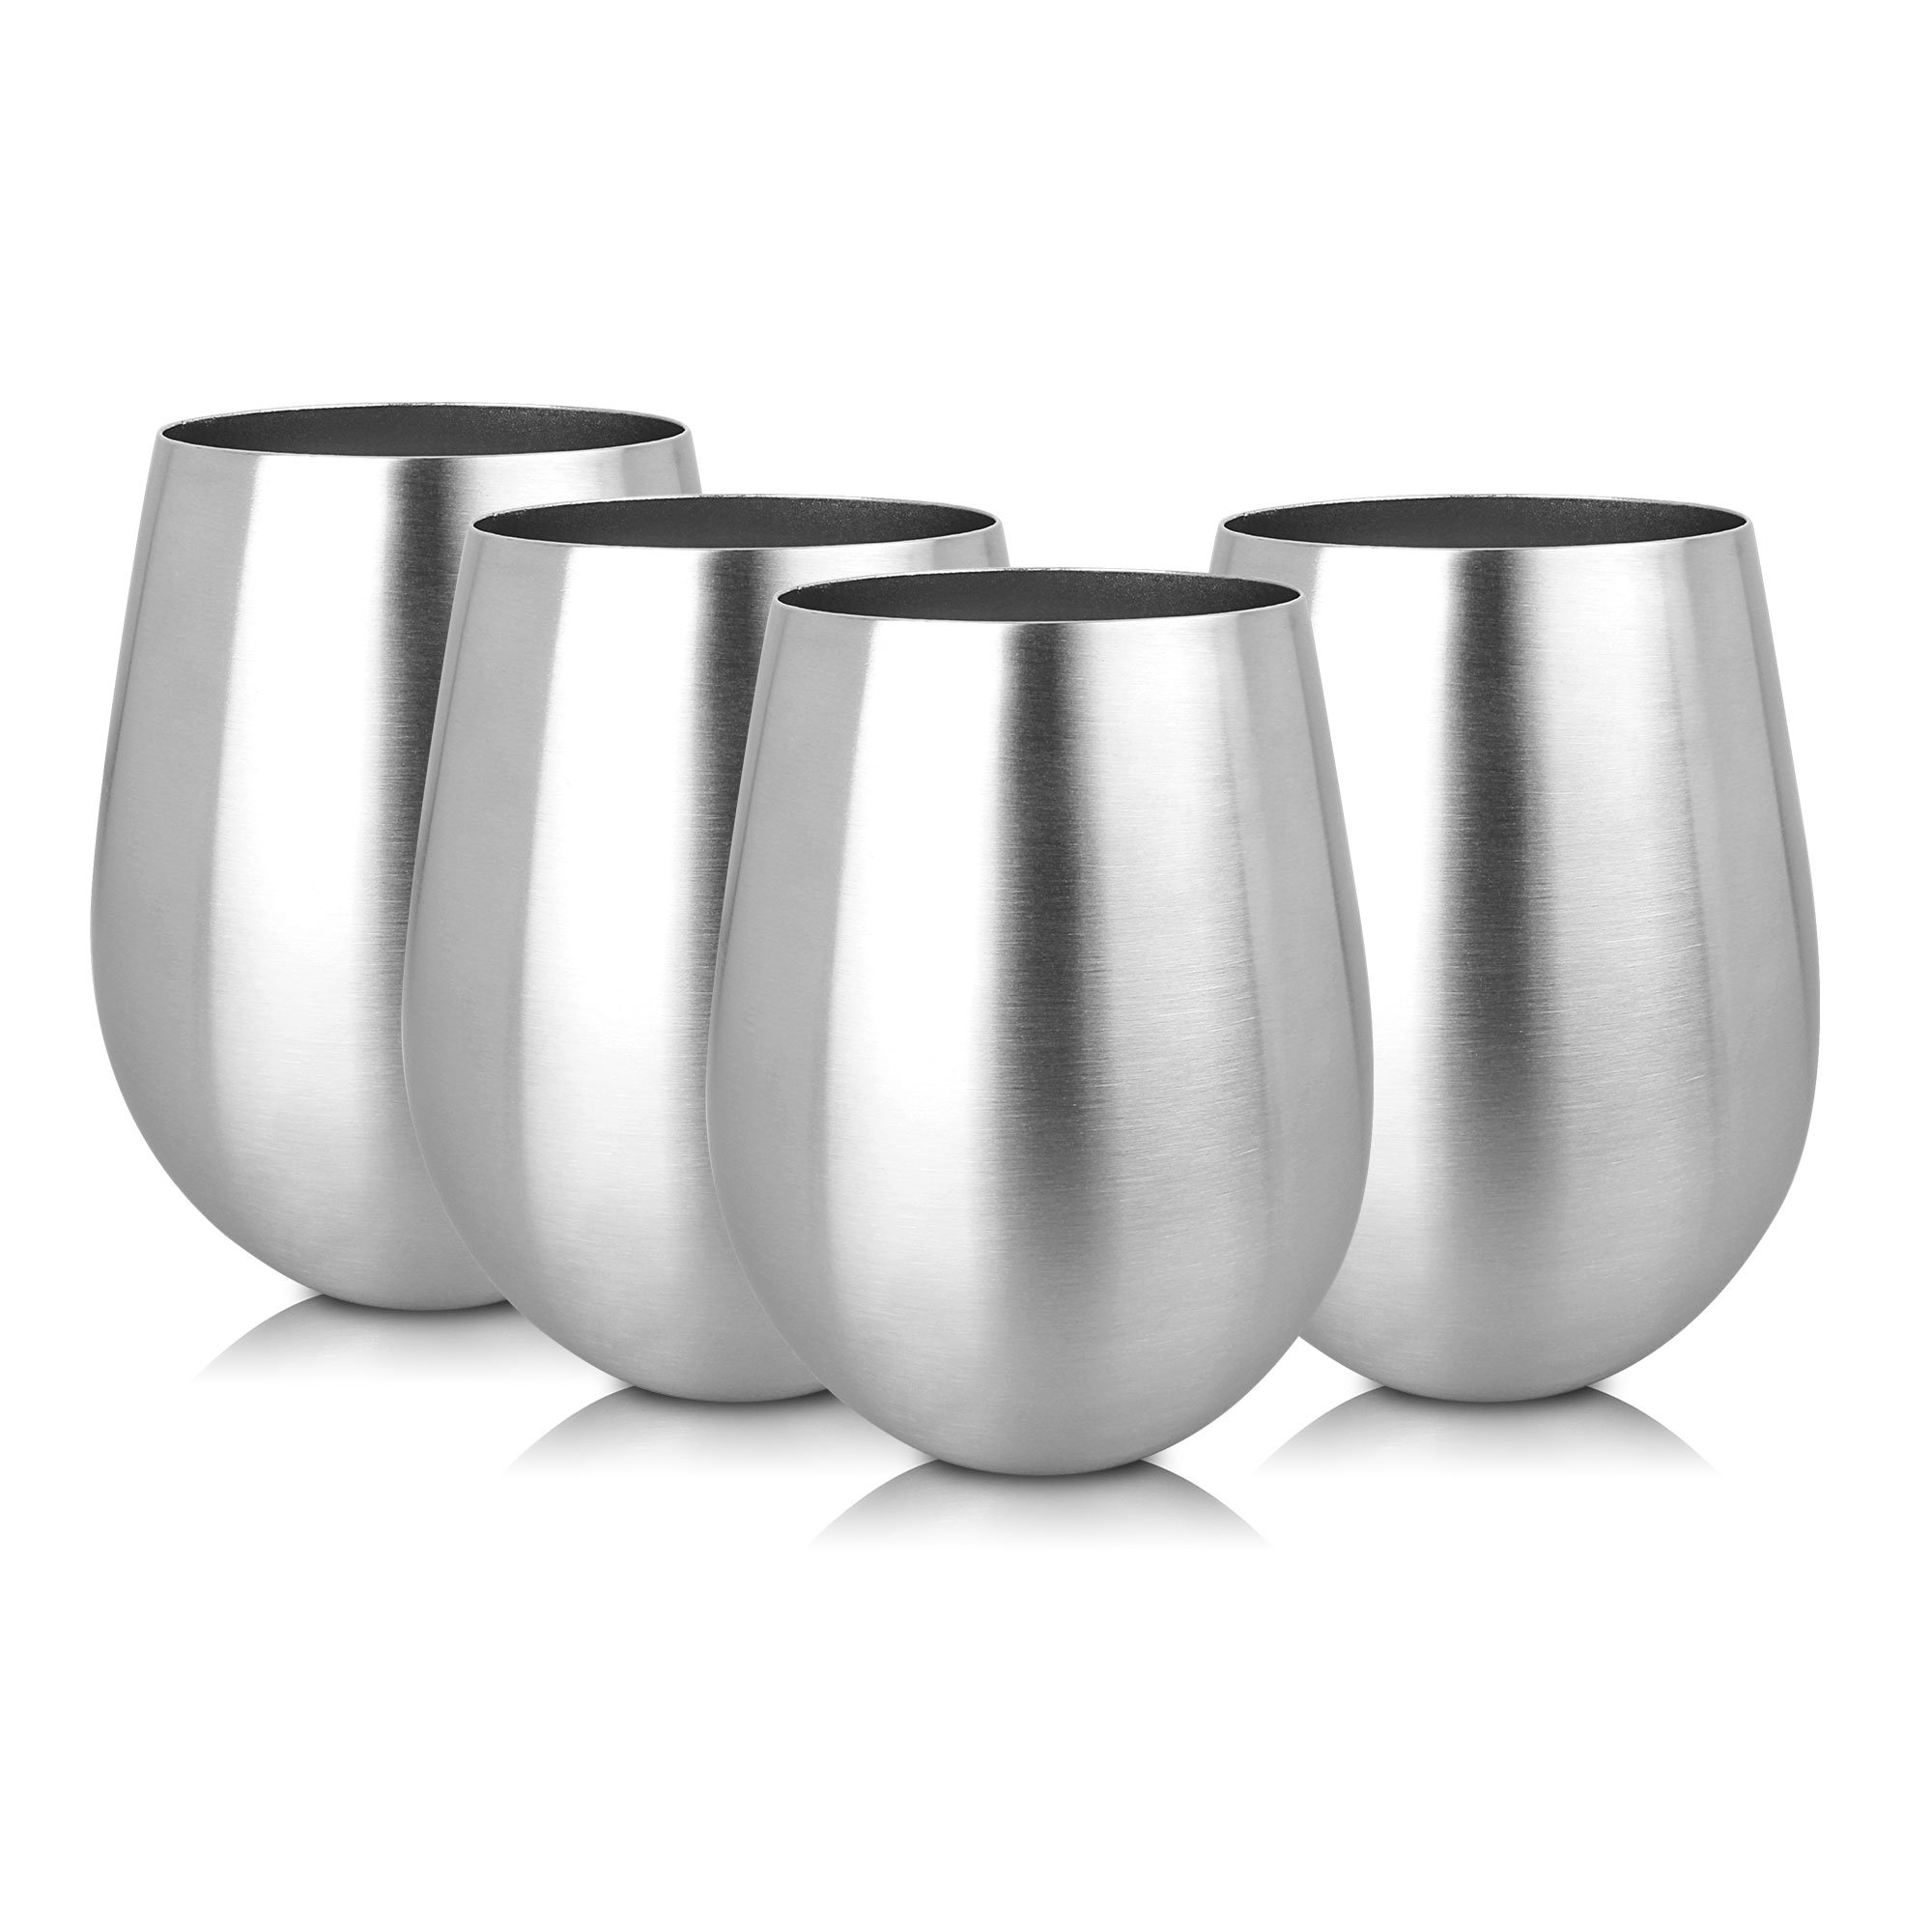 Kangora Stainless-Steel Stemless Wine Glass Cups (18oz), Ergonomic Design Glasses | Host Parties or Red and White Tastings | Brushed Finish | Indoor and Outdoor Use (4-PACK) by KANGORA